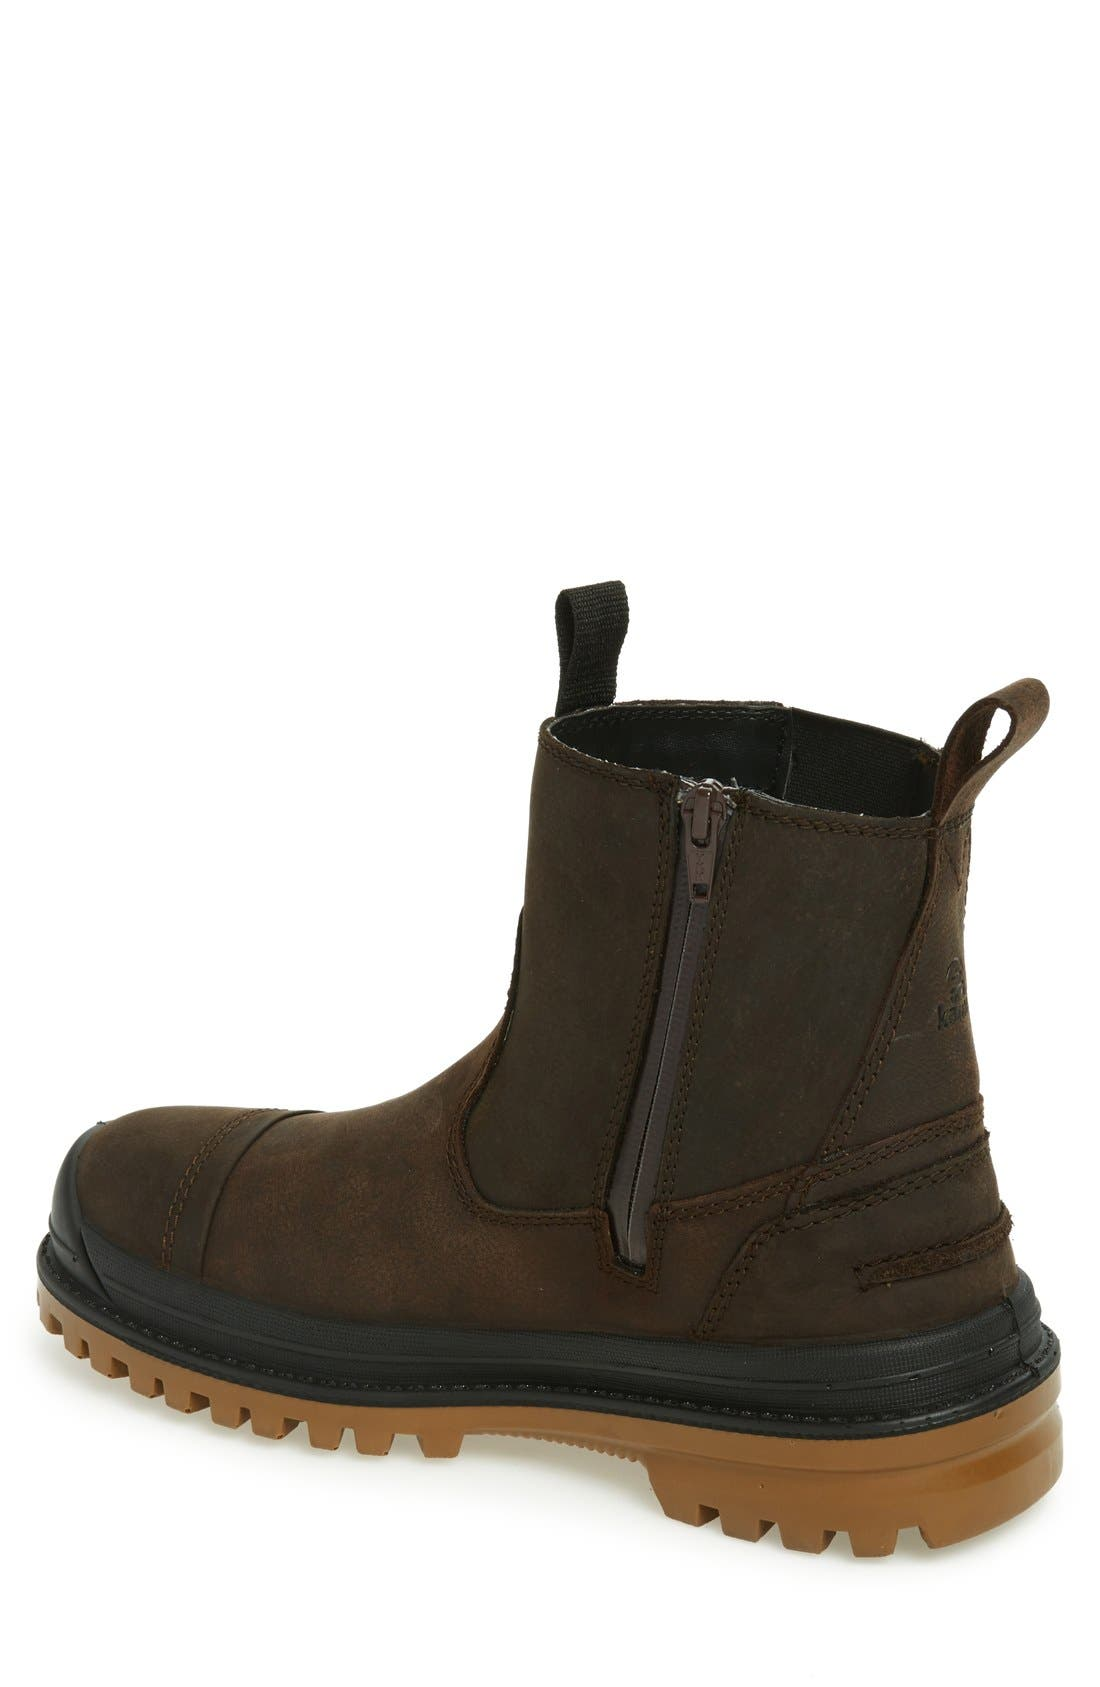 Griffon Snow Boot,                             Alternate thumbnail 2, color,                             Dark Brown Leather